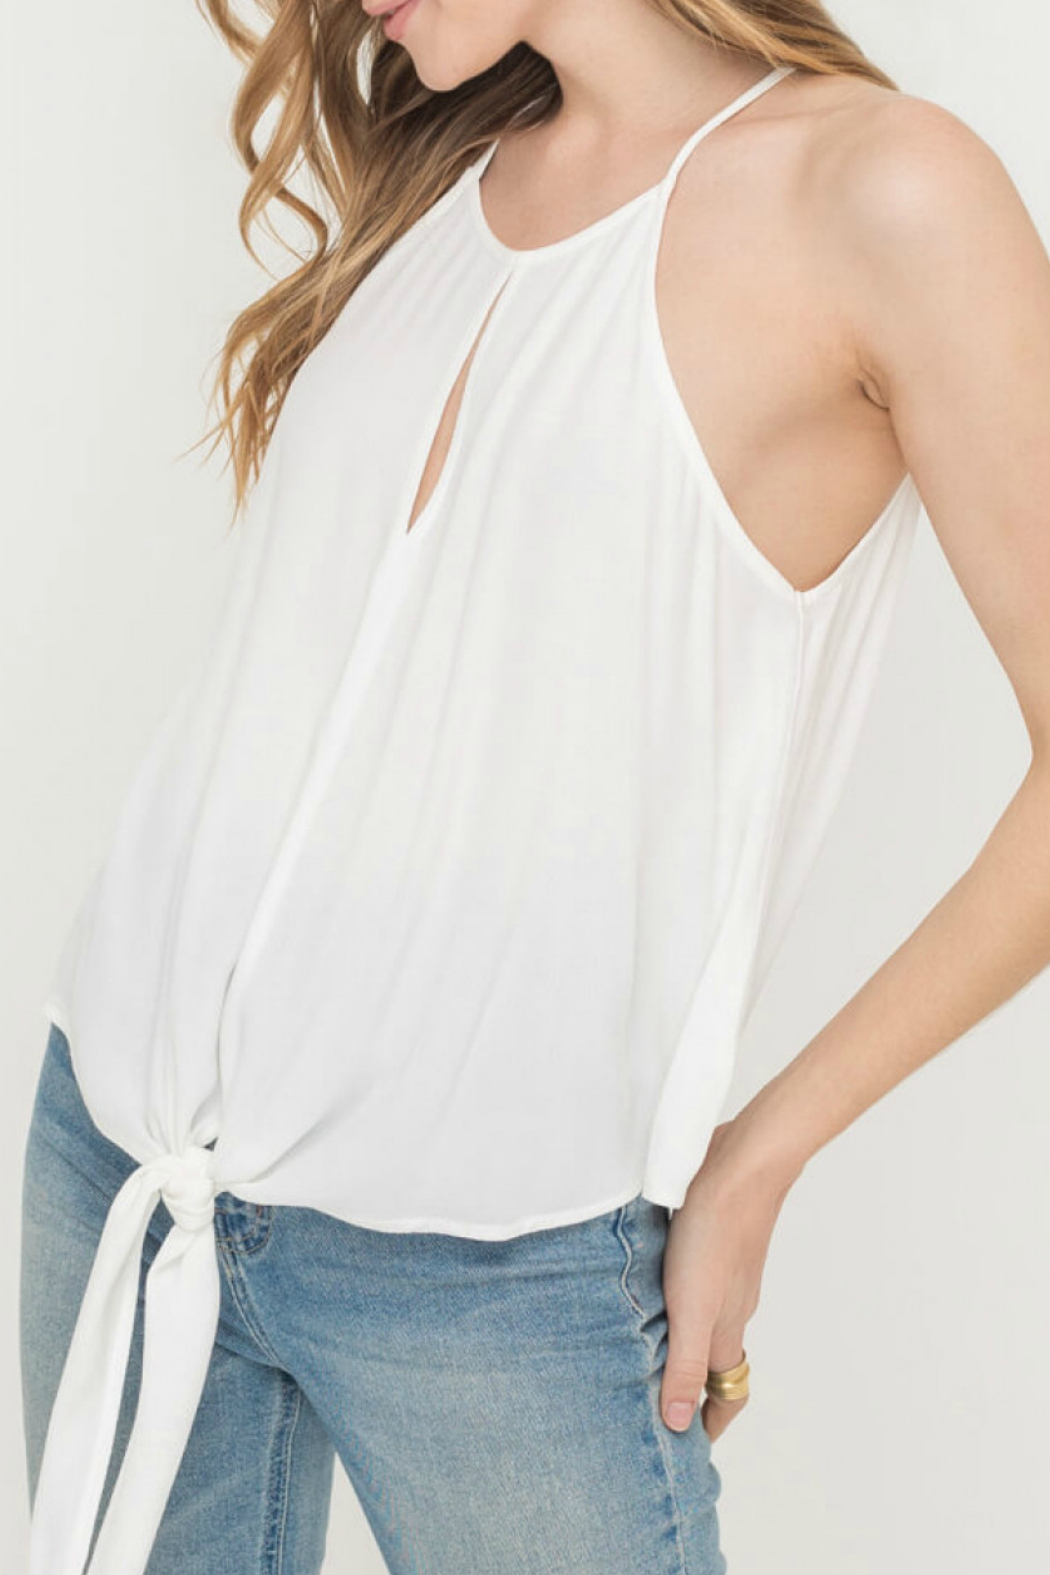 Lush  FRONT KNOT WOVEN TOP - Main Image